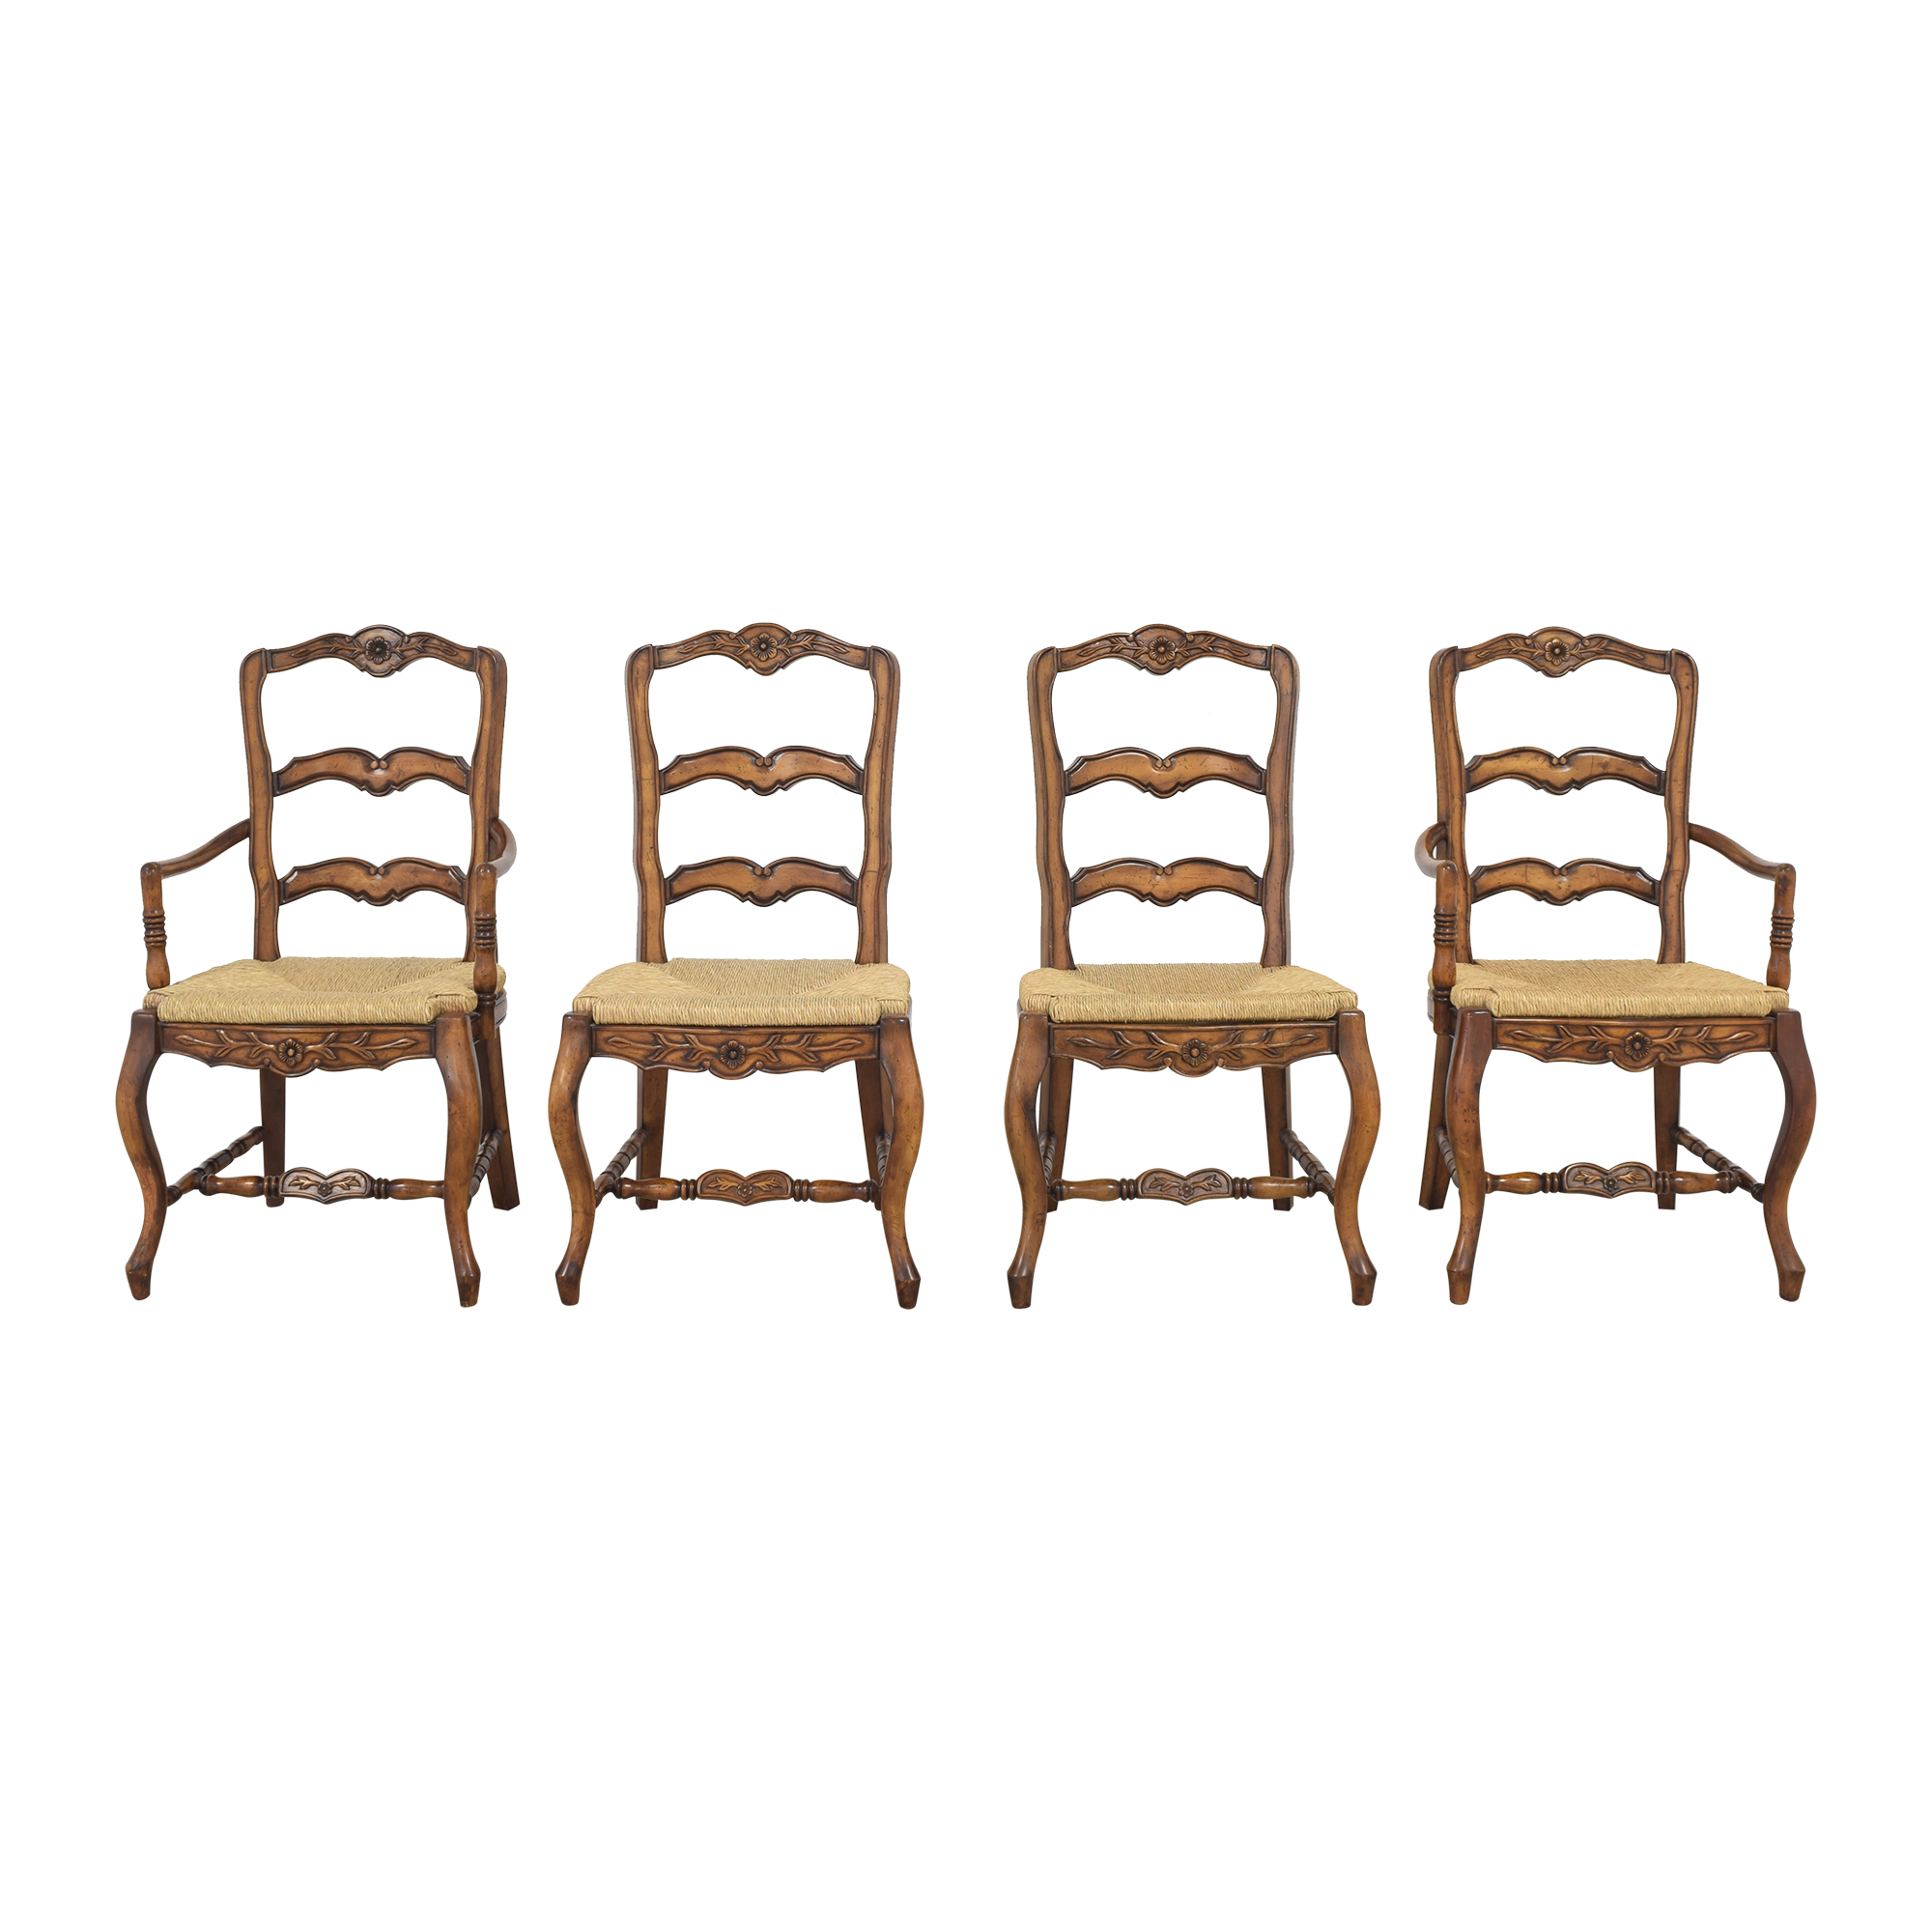 Artistica Artistica Cane Dining Chairs coupon